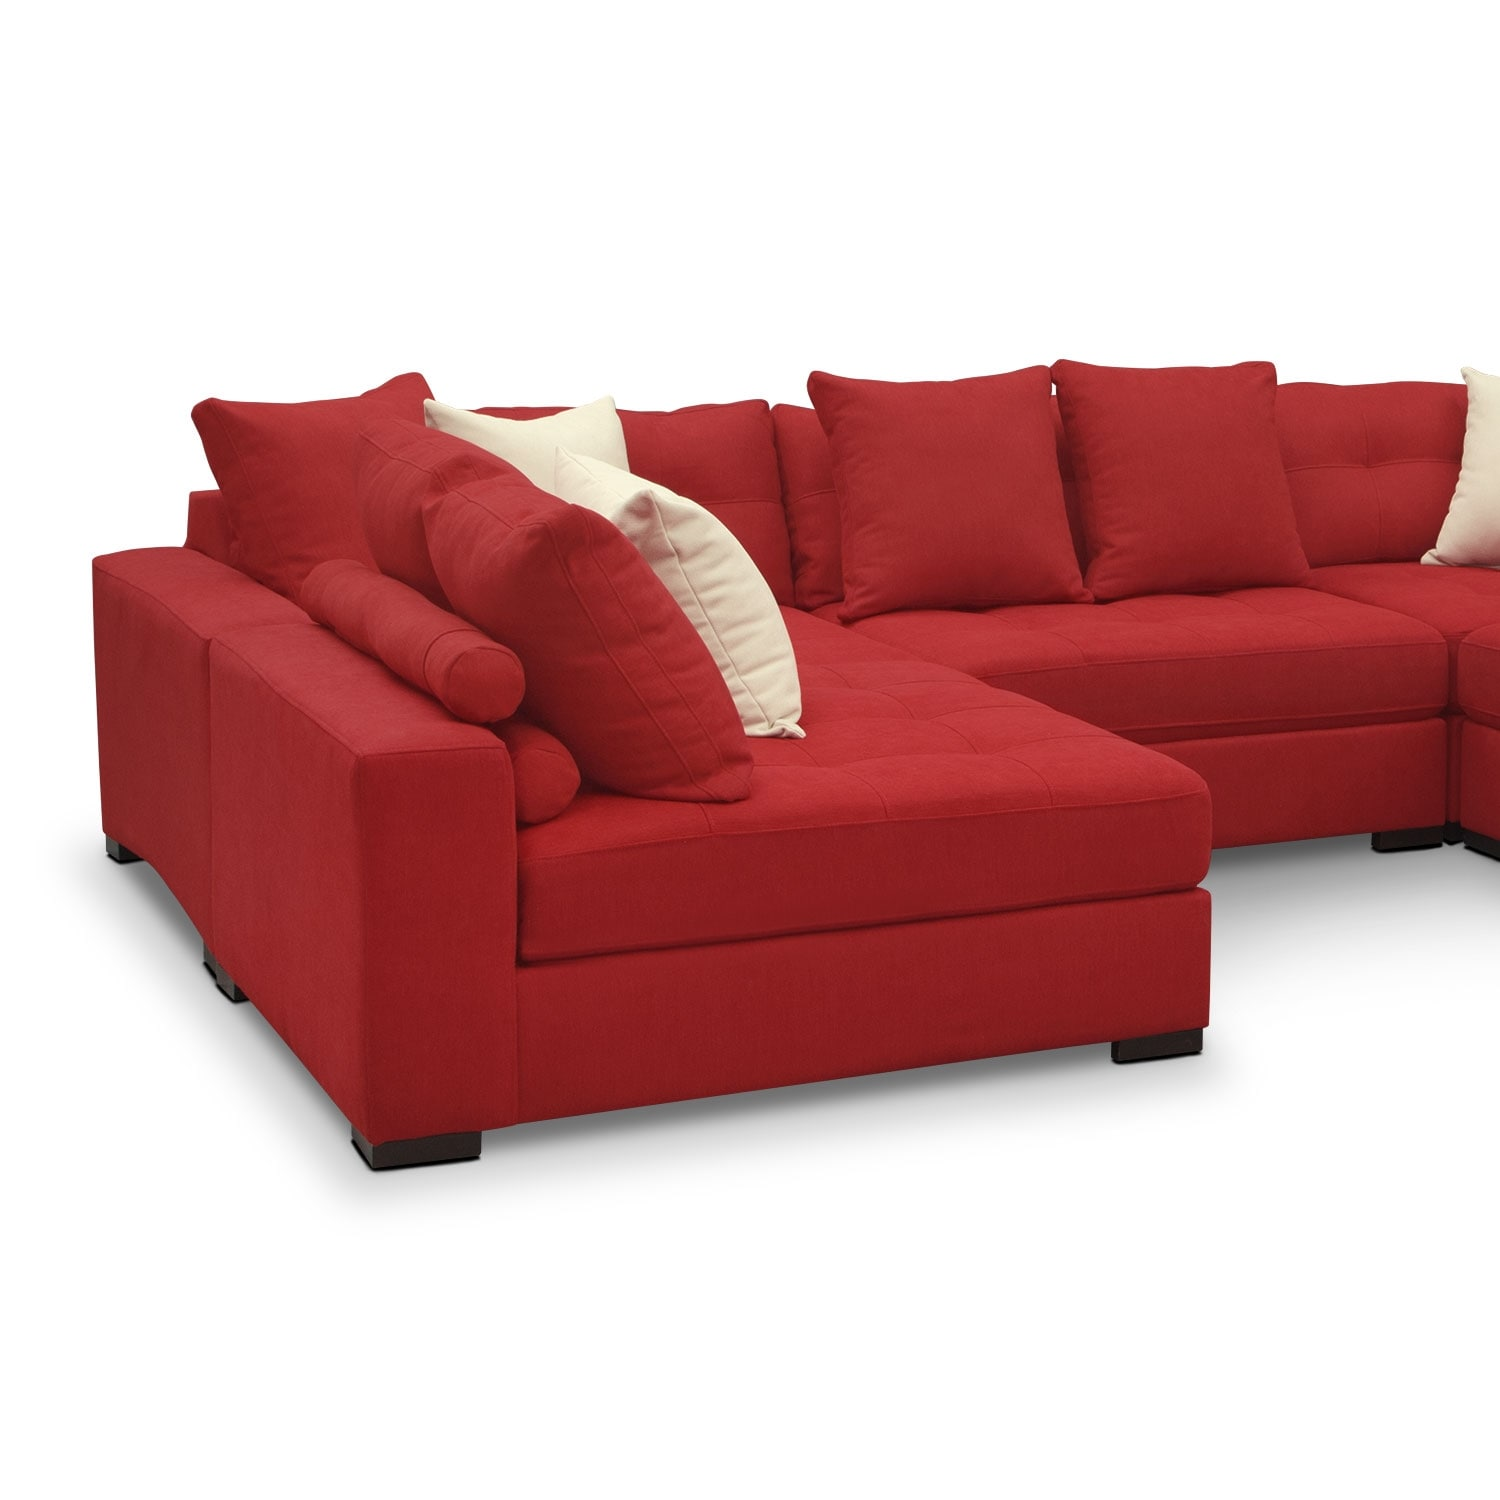 Venti 6 piece sectional red value city furniture for Red sectional sofa value city